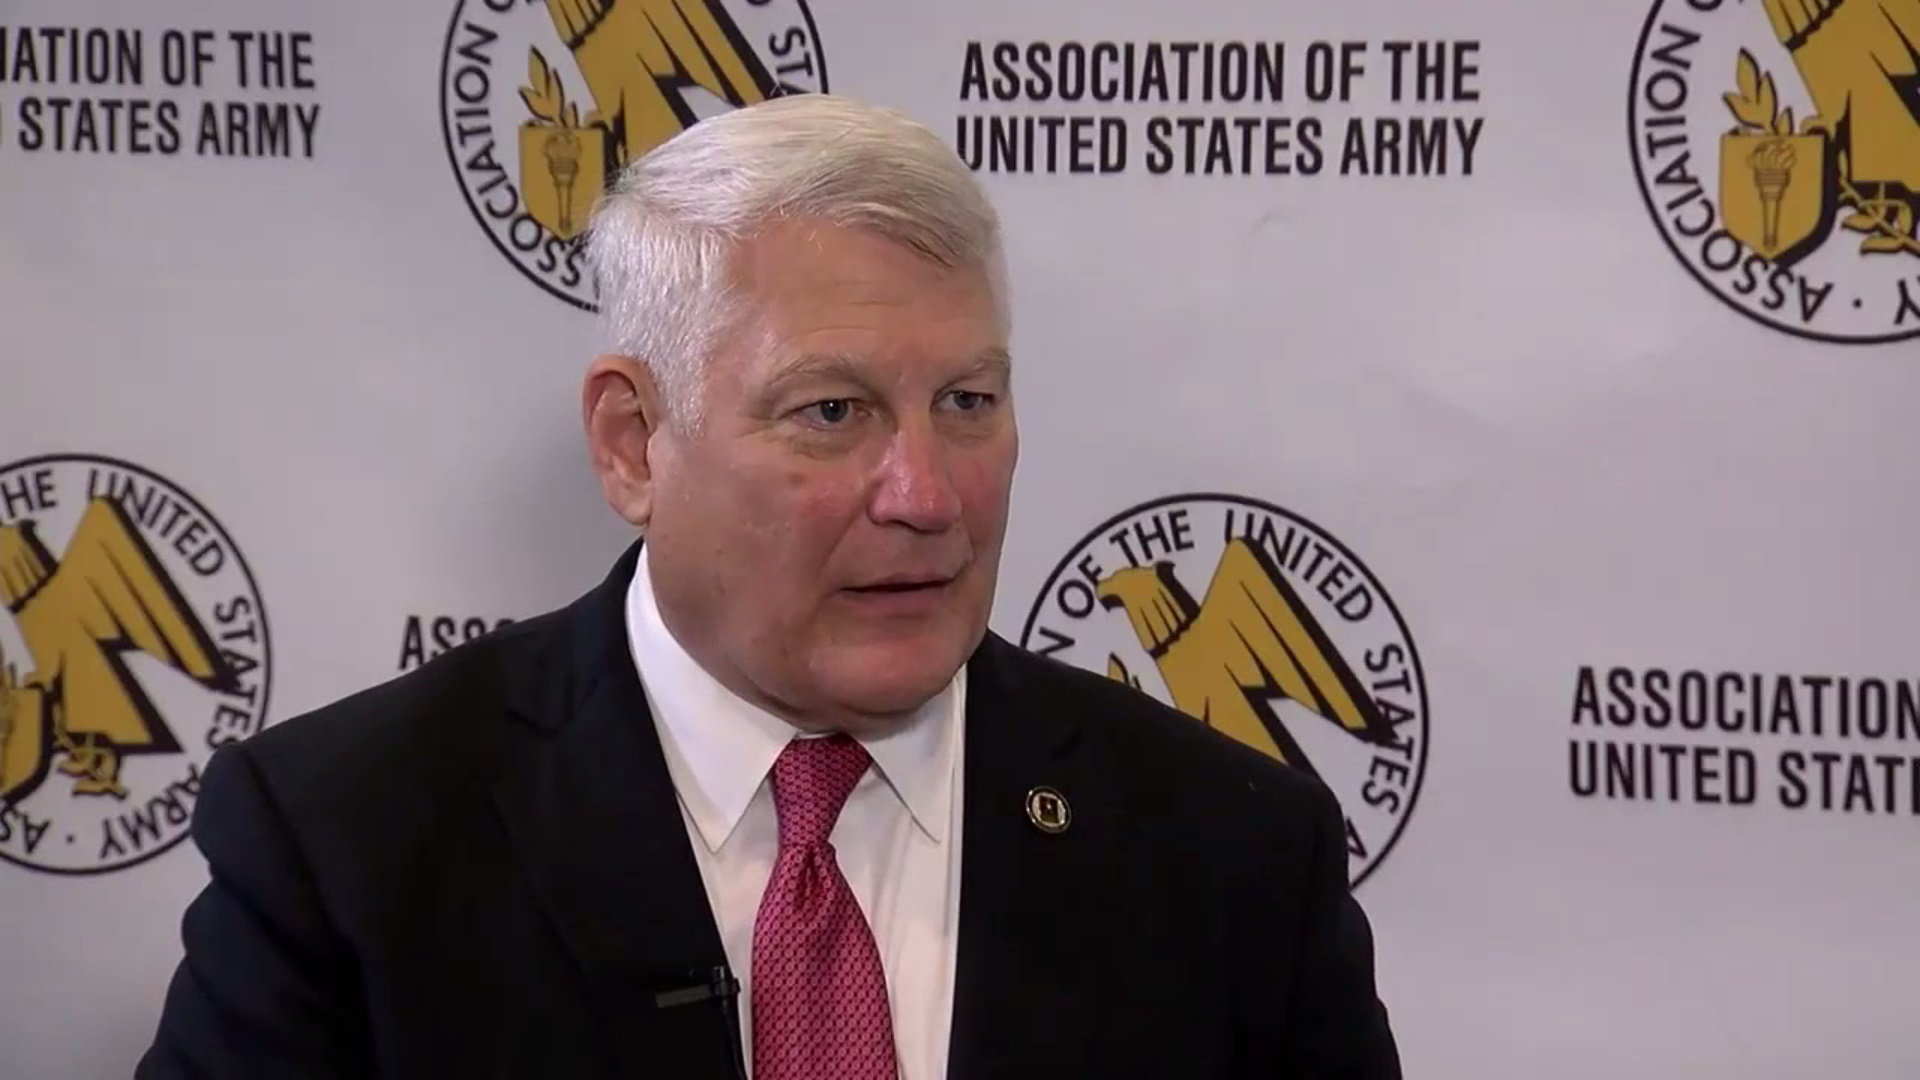 Highlights from the 2018 Association of the U.S. Army annual meeting